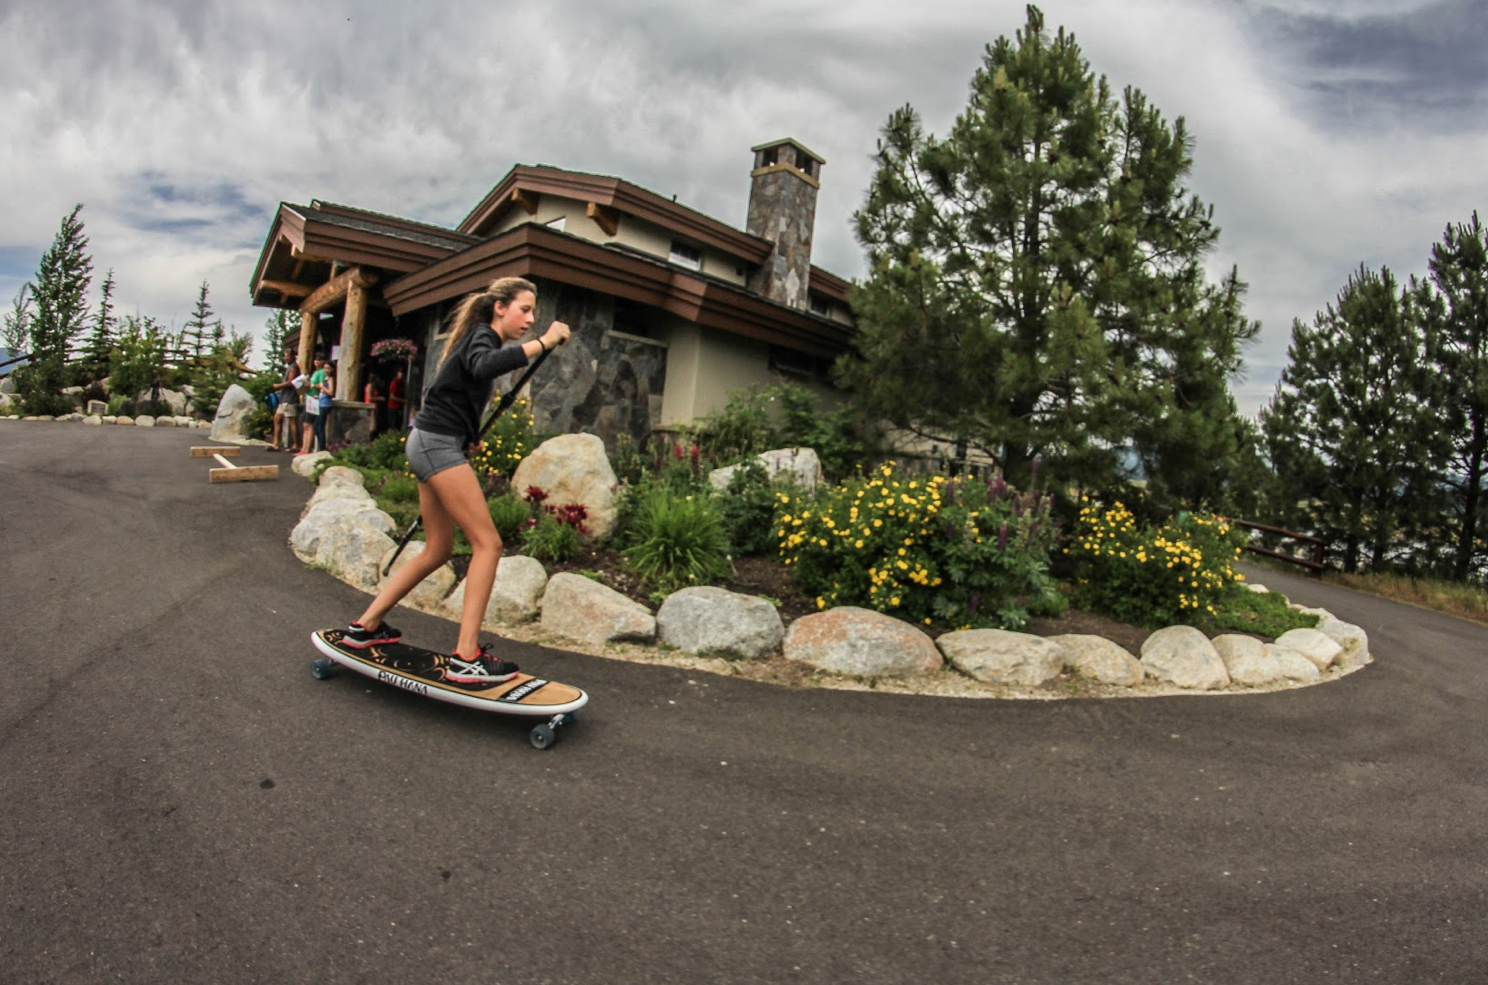 Riding the Pau Hana Oahu sk8 skateboard in Colorado